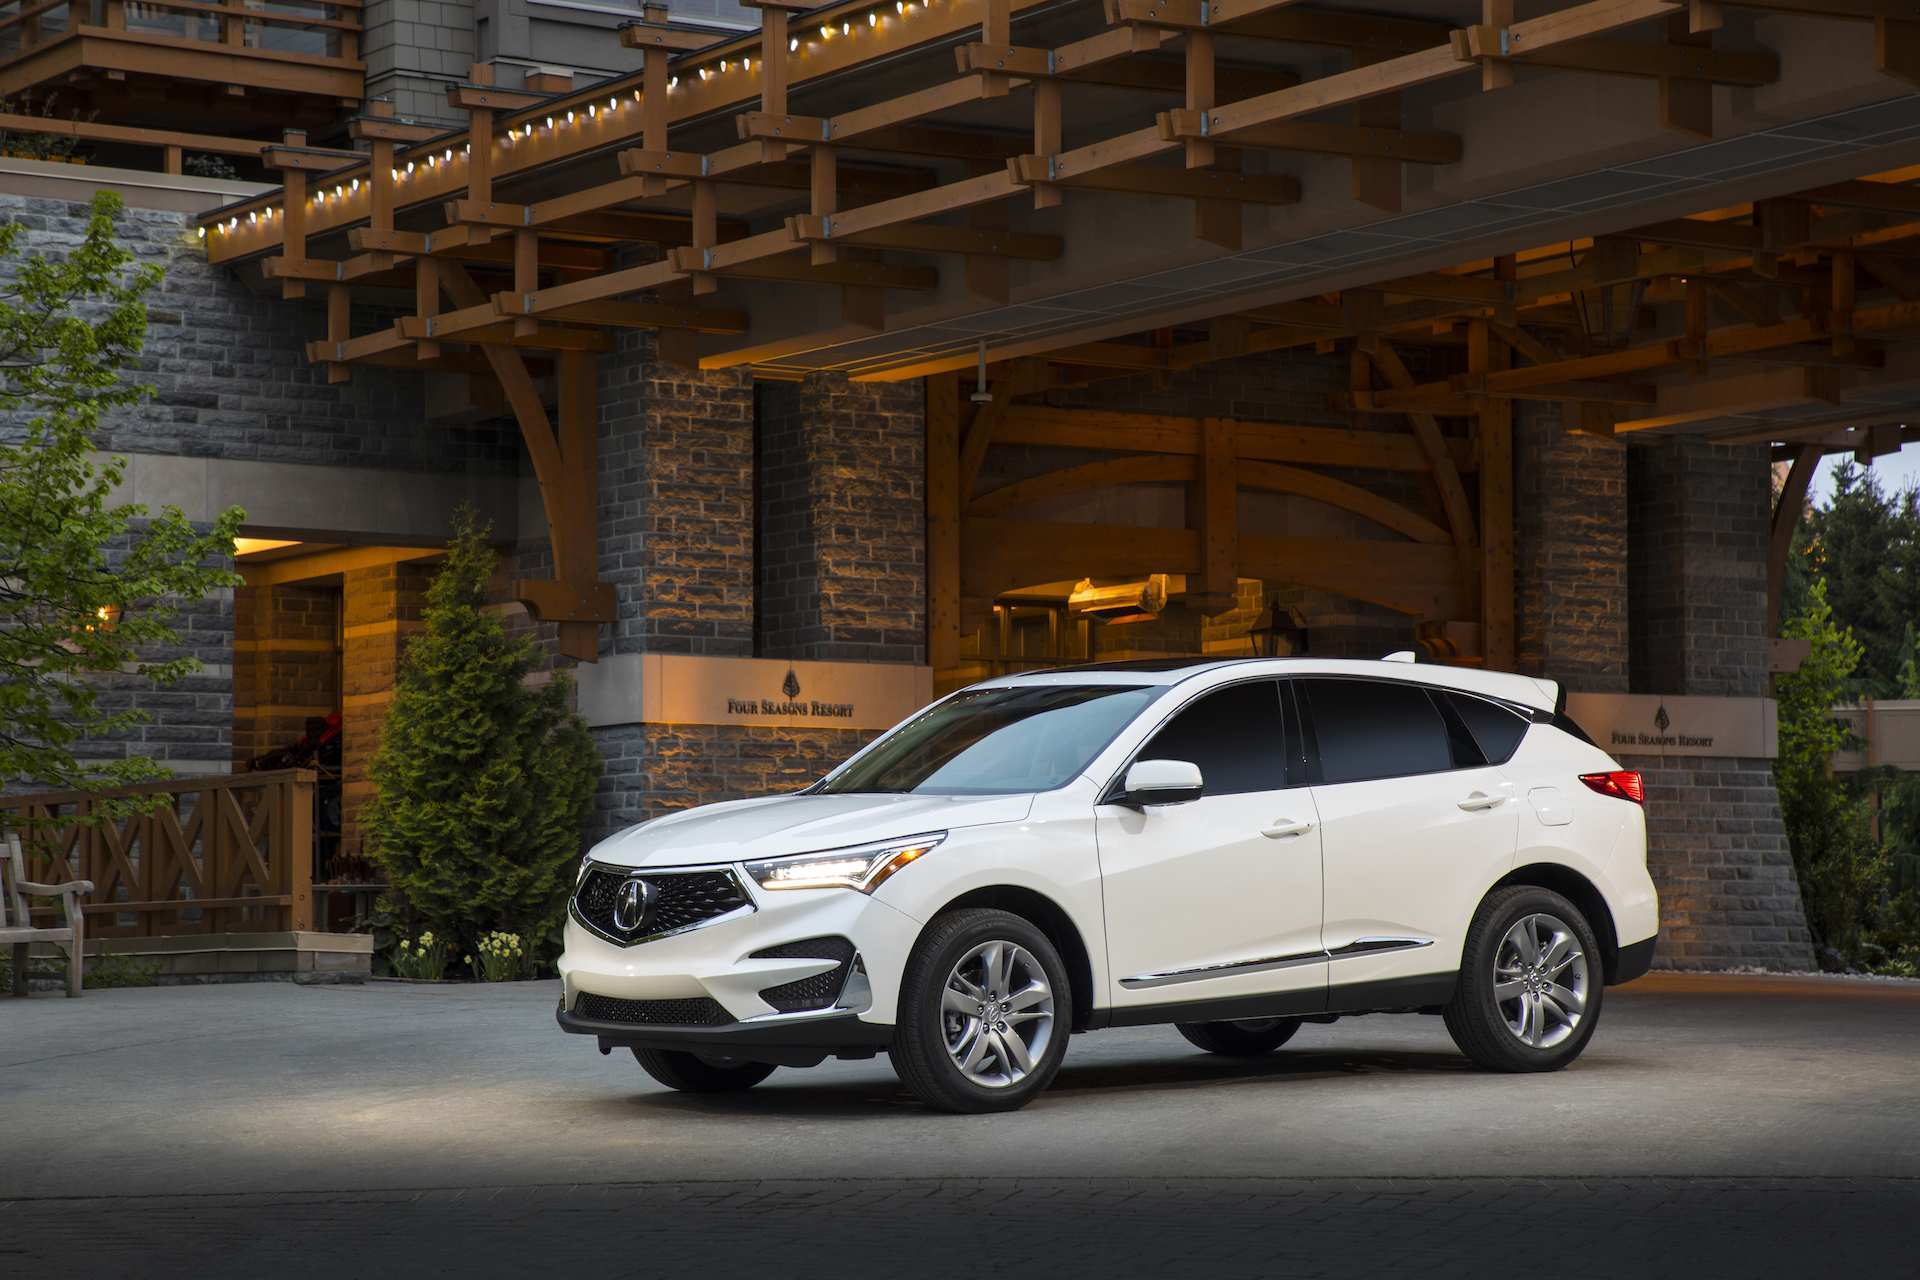 45 Gallery of Difference Between 2019 And 2020 Acura Rdx Engine with Difference Between 2019 And 2020 Acura Rdx